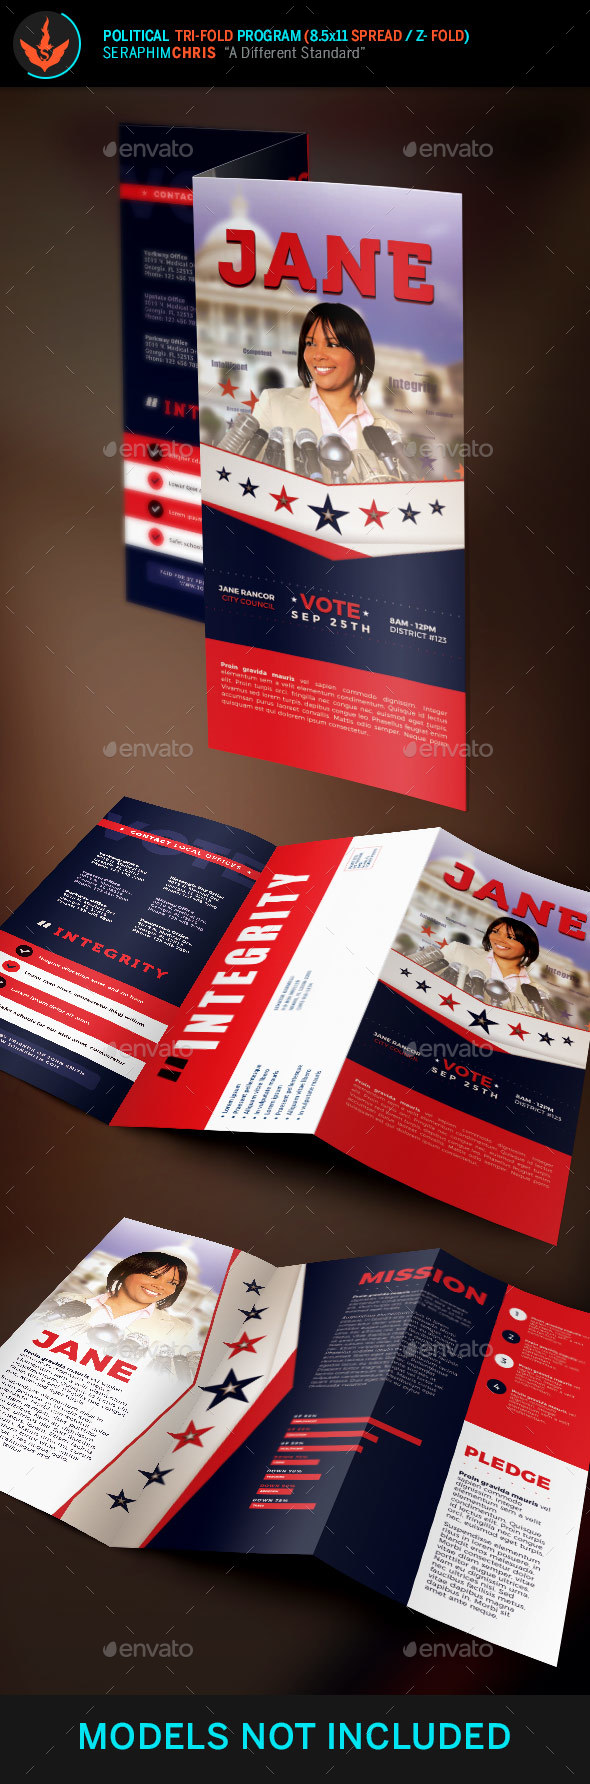 brochure templates from graphicriver - Brochure Templates Envato